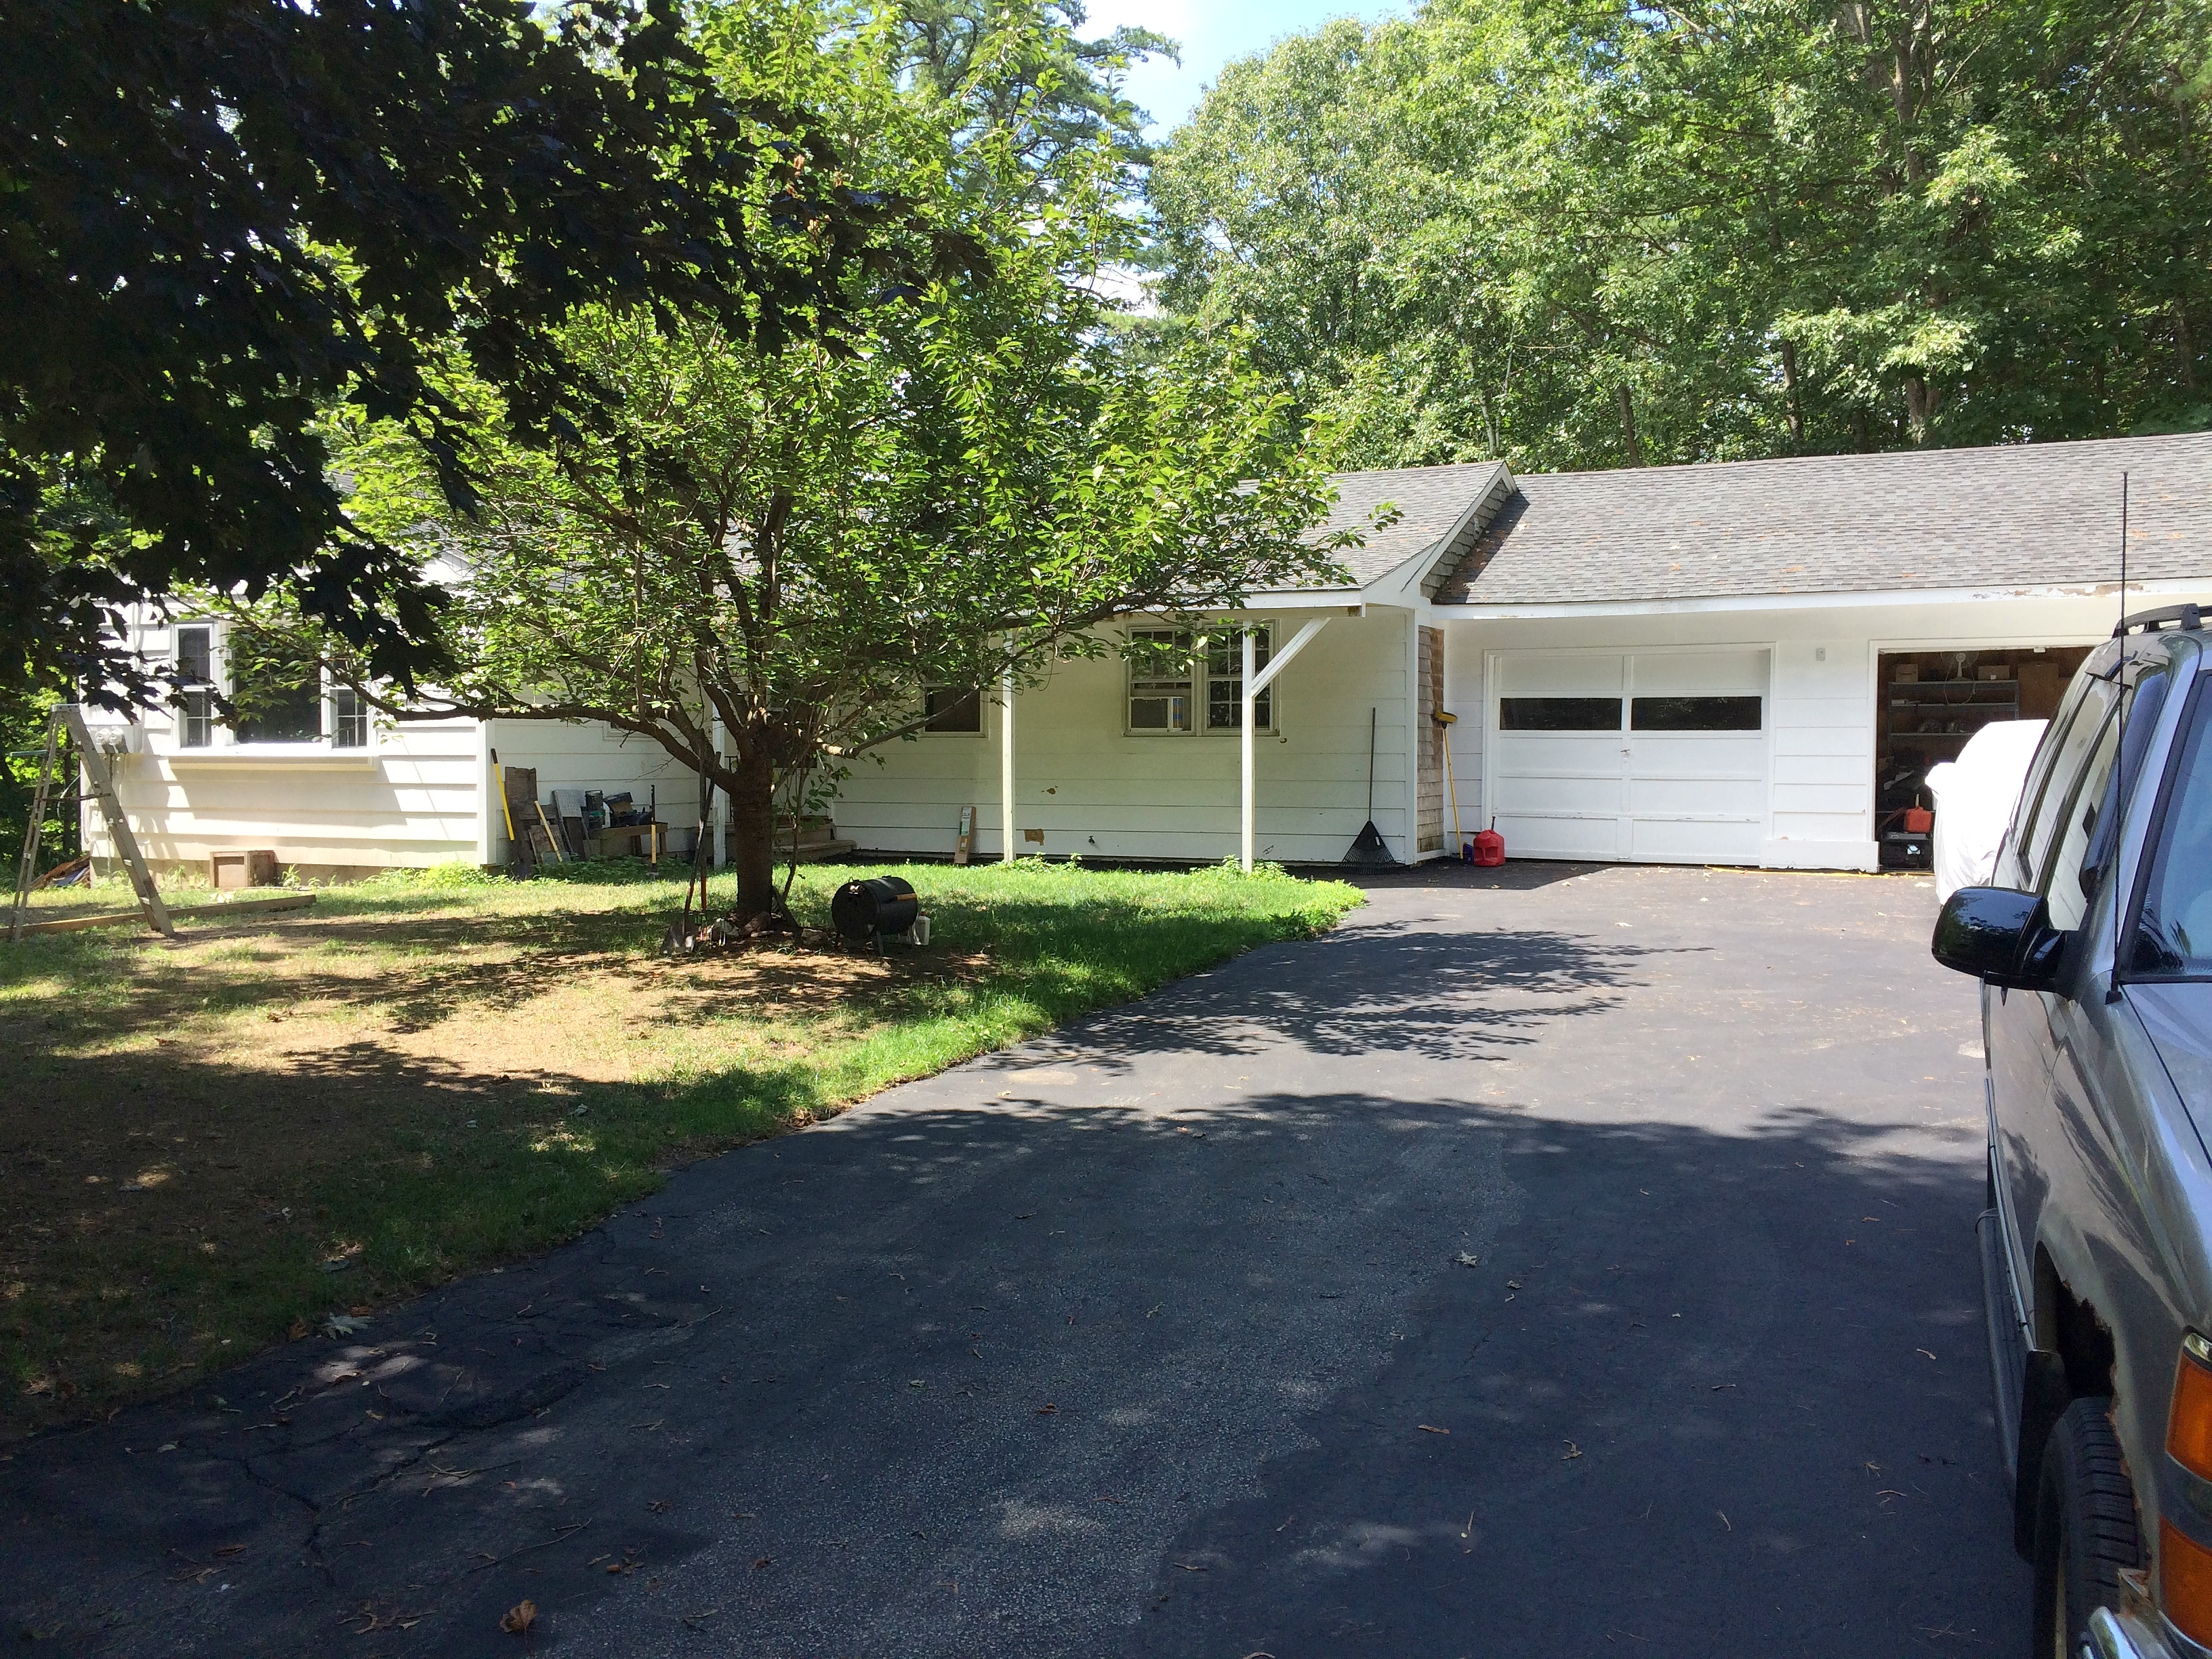 5 Bedrooms / 1.5 Bathrooms - Est. $1,794.00 / Month* for rent in Henniker, NH